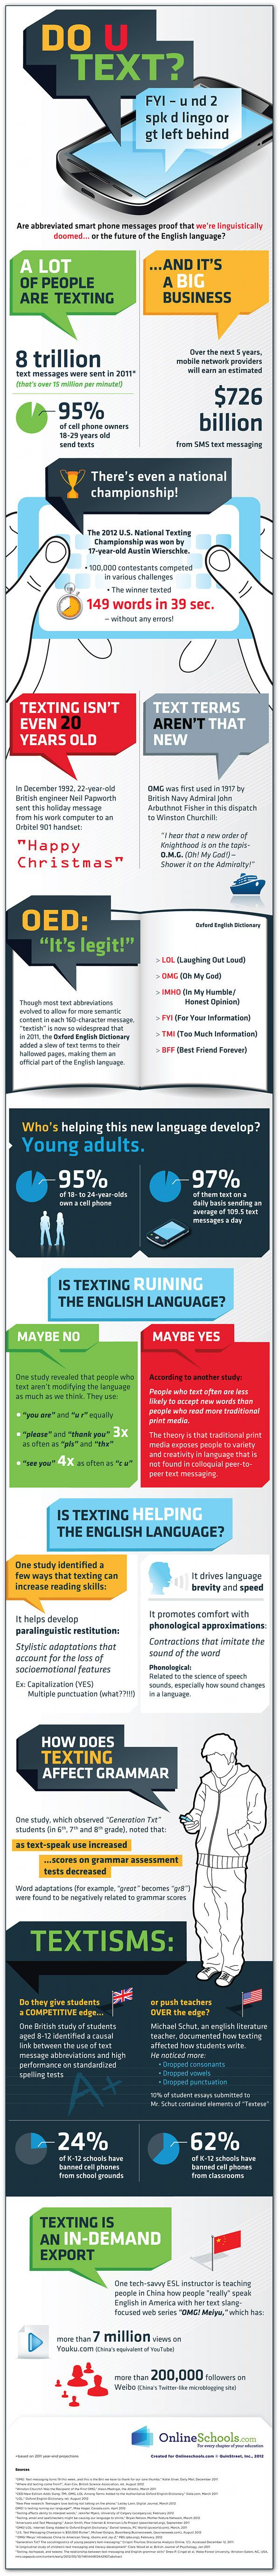 Is text lingo the future of En